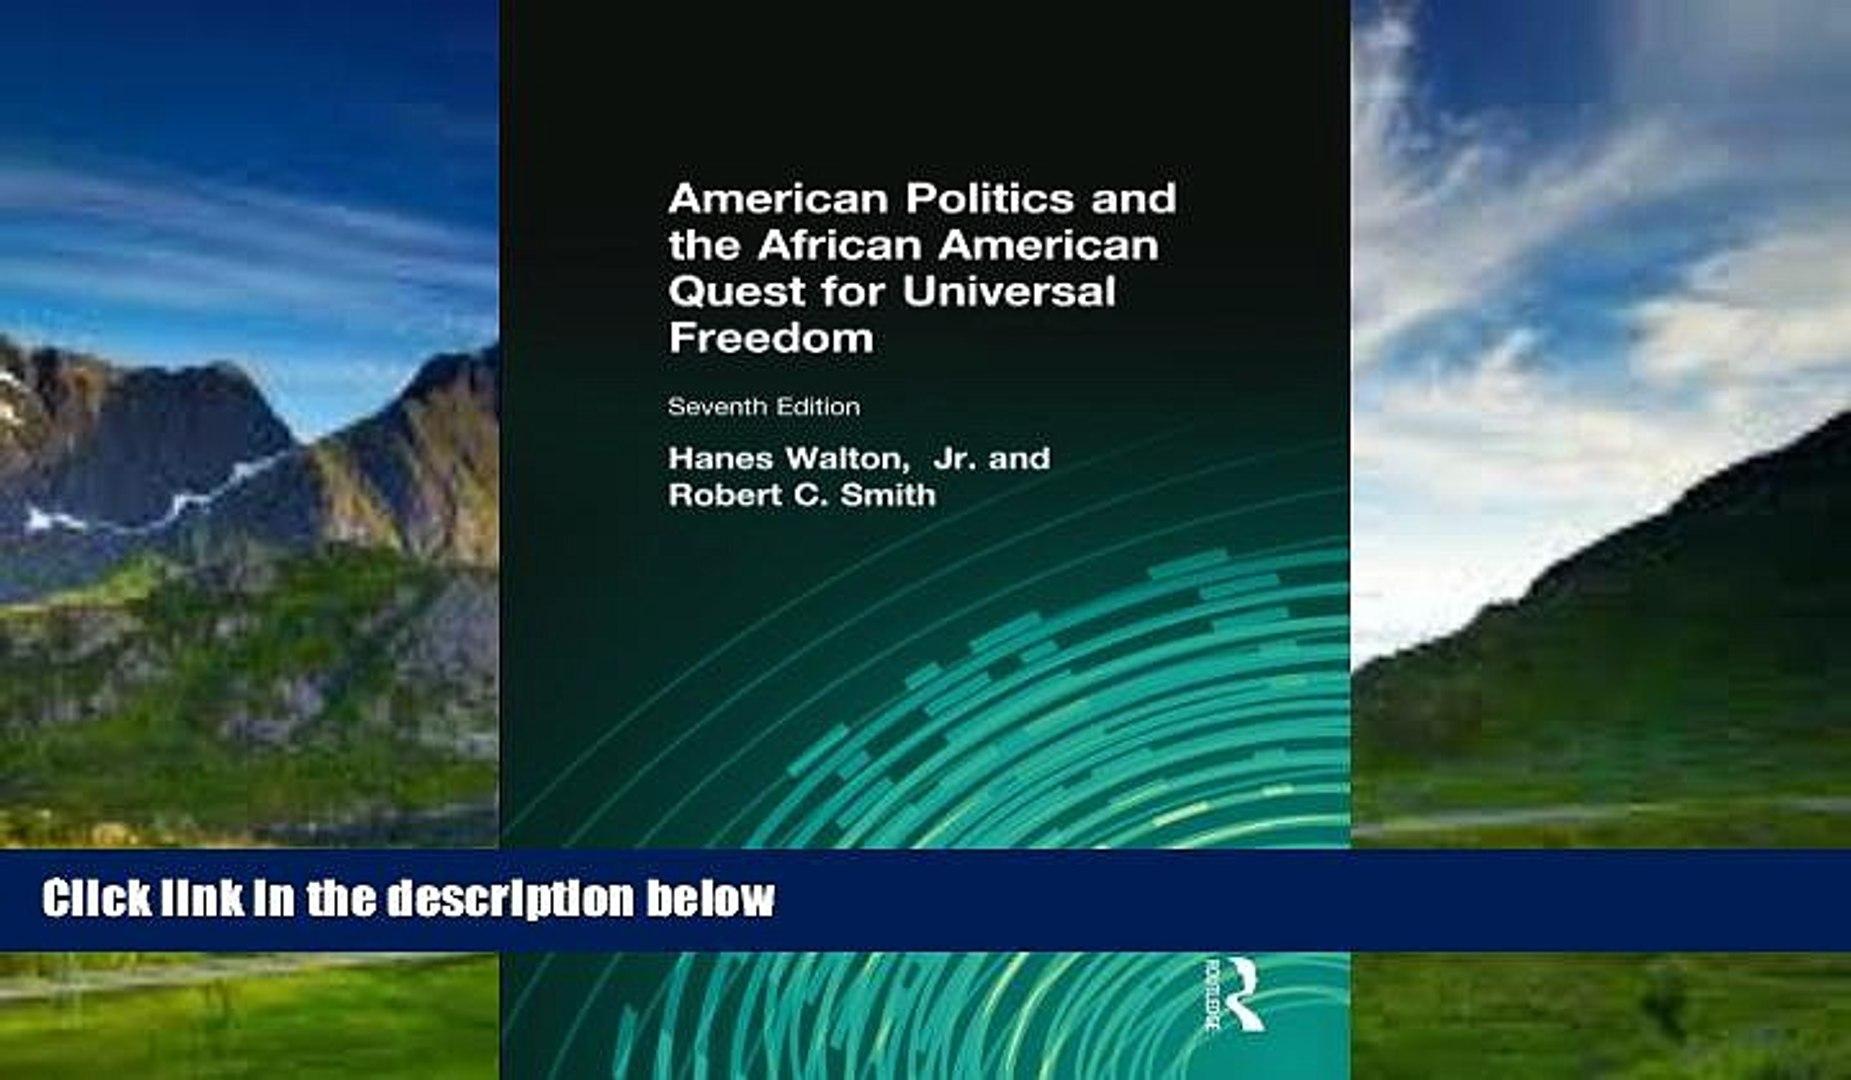 Books to Read  American Politics and the African American Quest for Universal Freedom  Best Seller